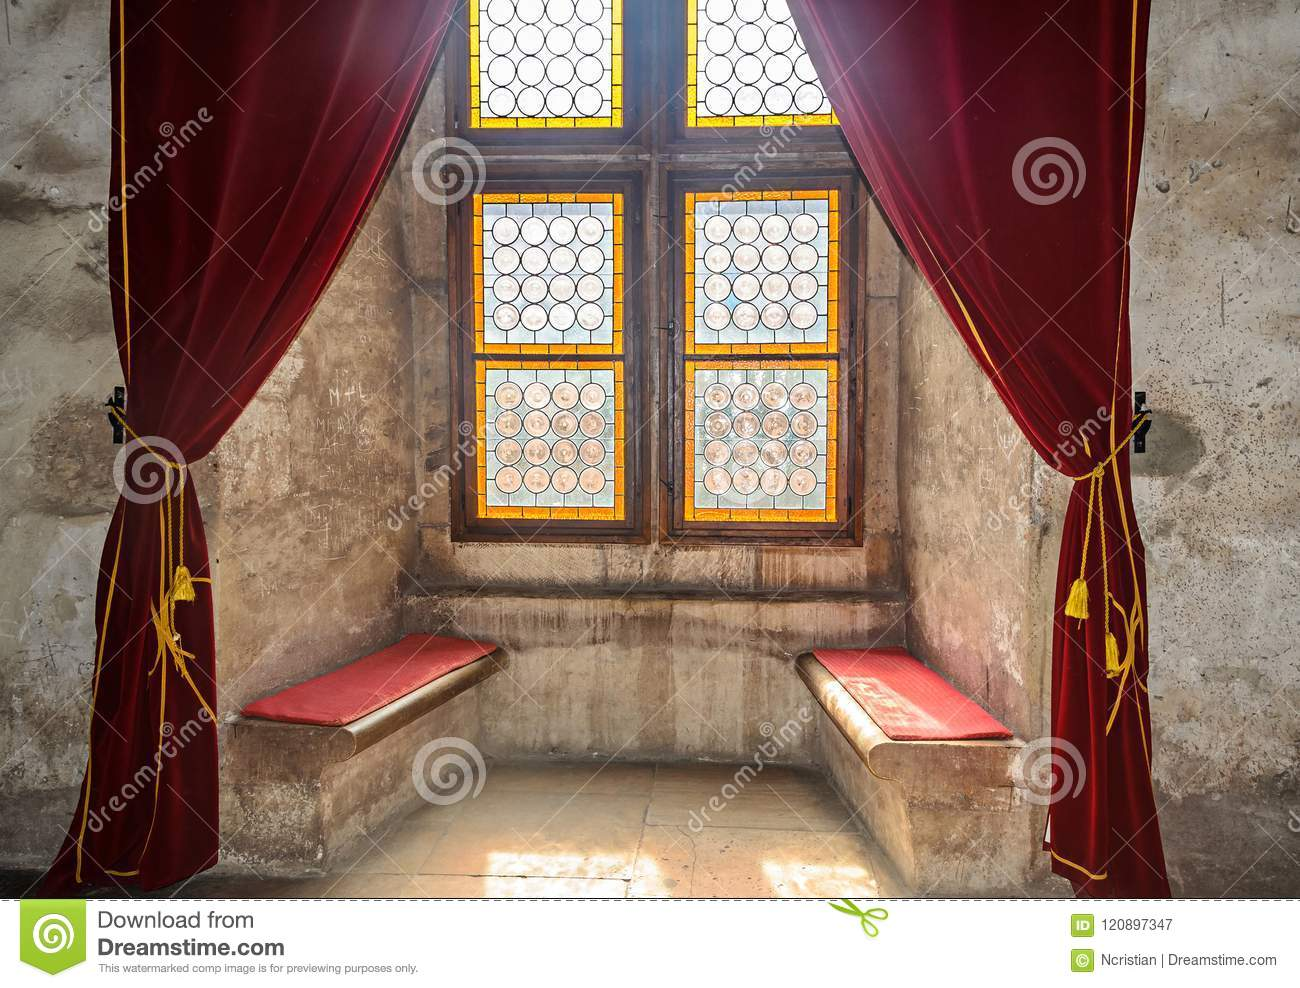 Details from the interior room of the Corvins Castle build by John Hunyadi, colored window.